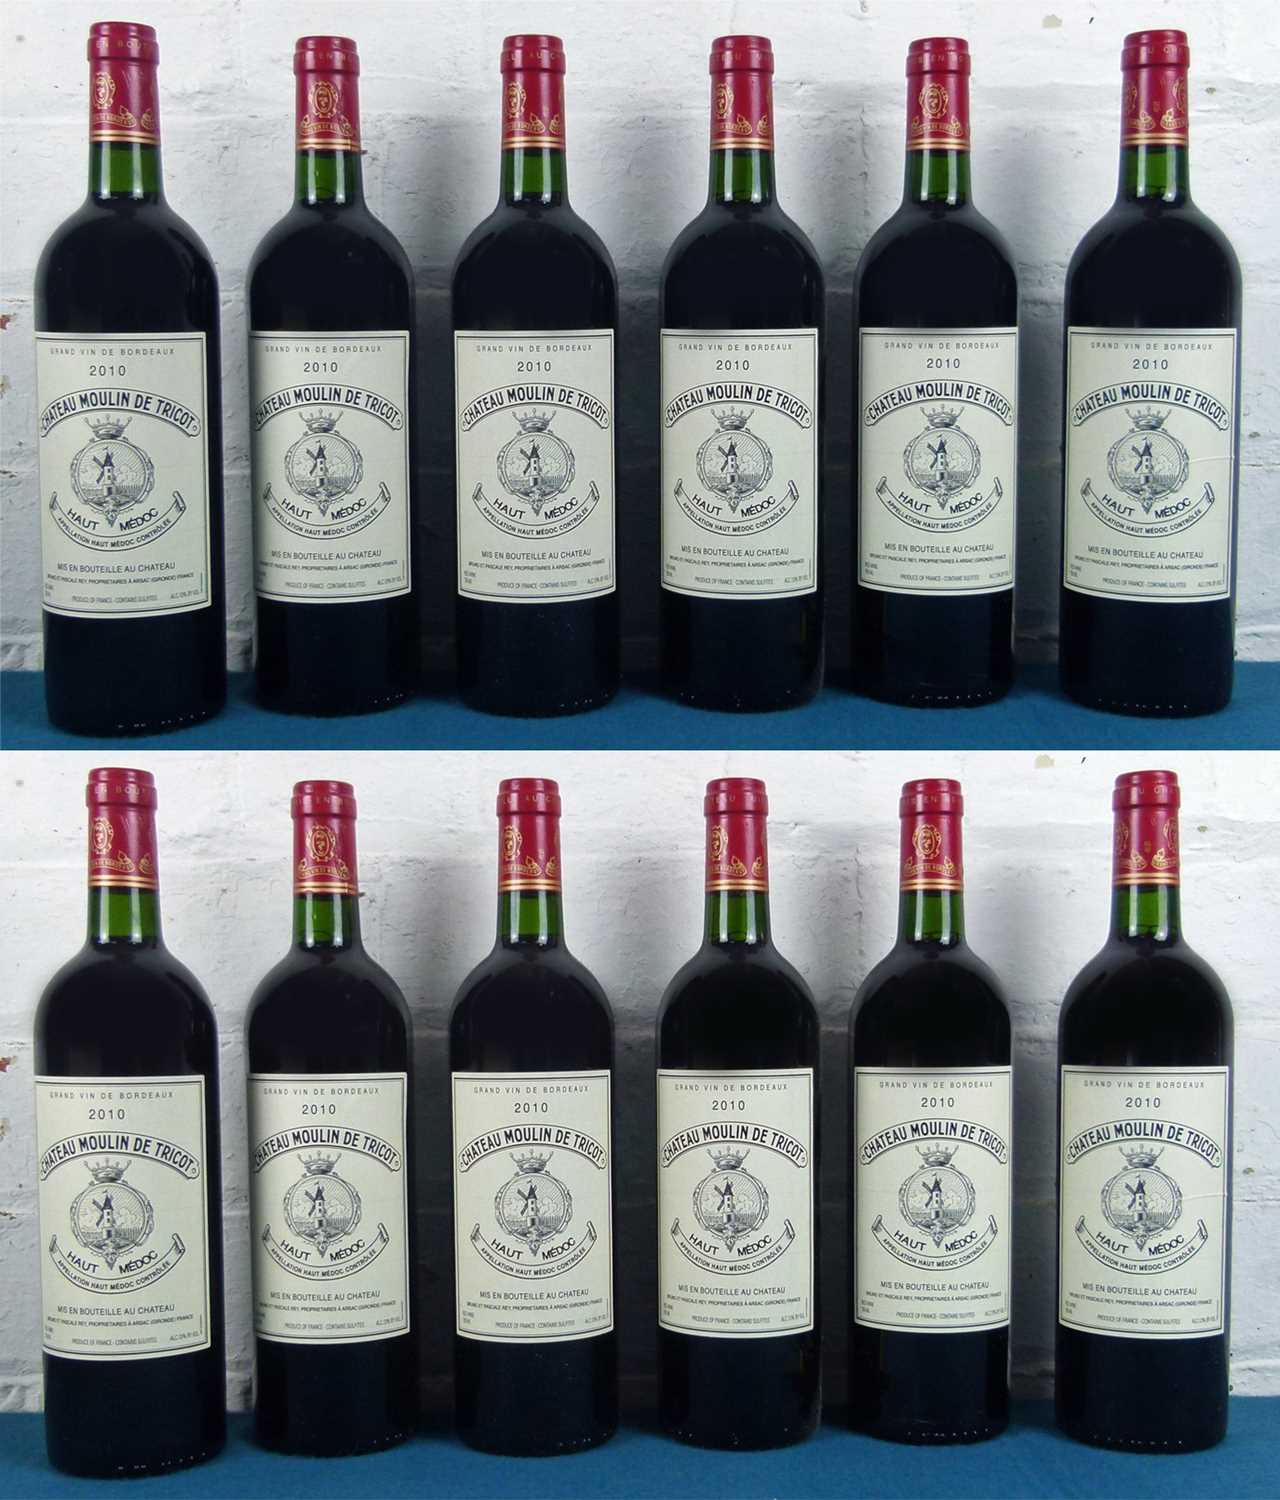 Lot 3 - 12 Bottles (in OC) Chateau Moulin de Tricot, Haut Medoc 2010